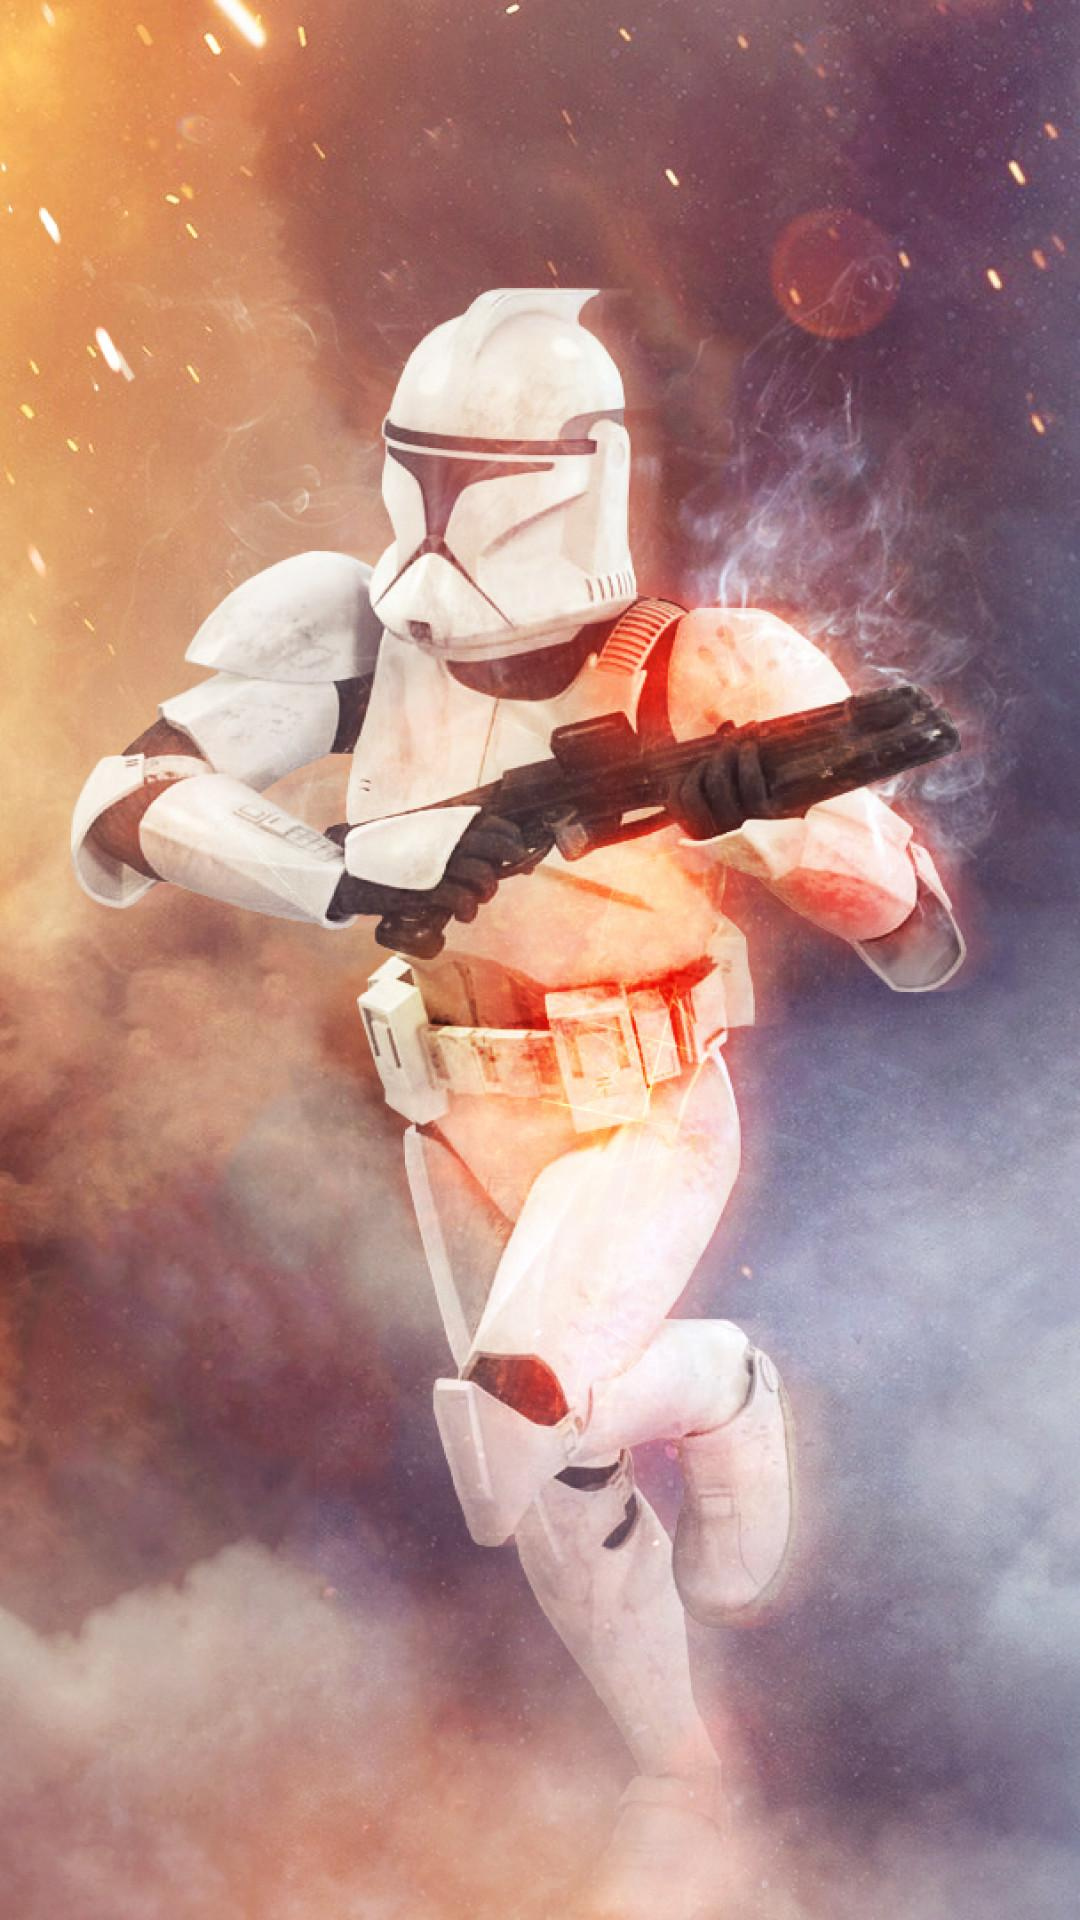 Download Clone Trooper Iphone Wallpaper Hd Backgrounds